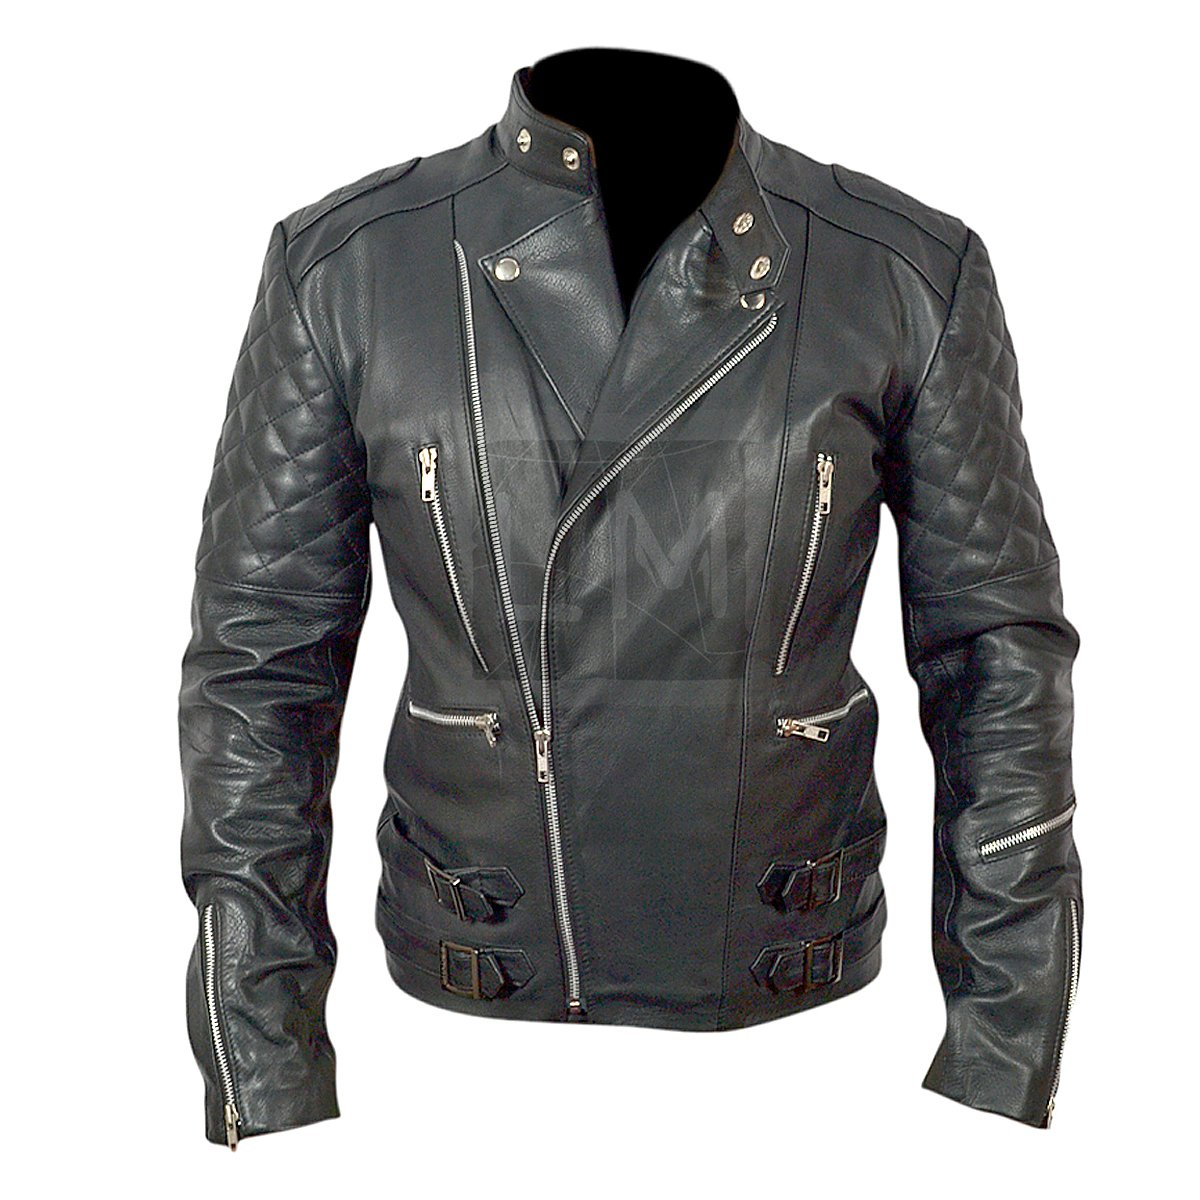 Shop Wilsons Leather for men's leather motorcycle jackets and more. Get high quality men's leather motorcycle jackets at exceptional values.